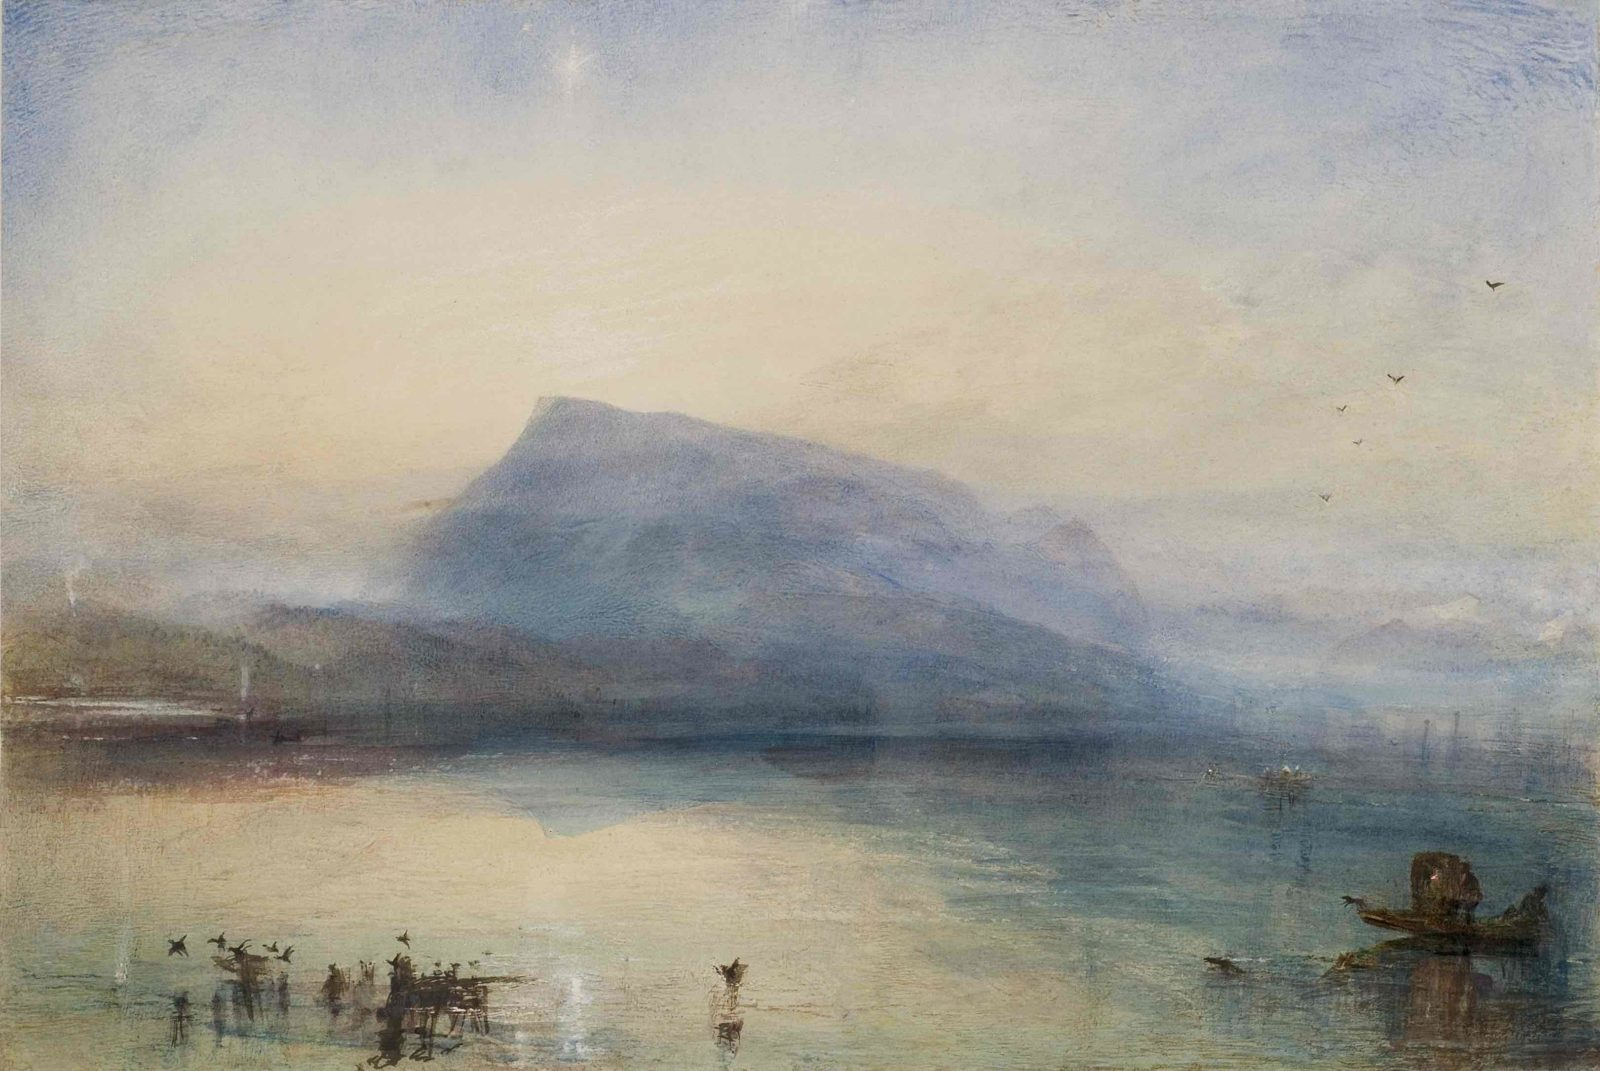 William Turner, The Blue Rigi, Sunrise,